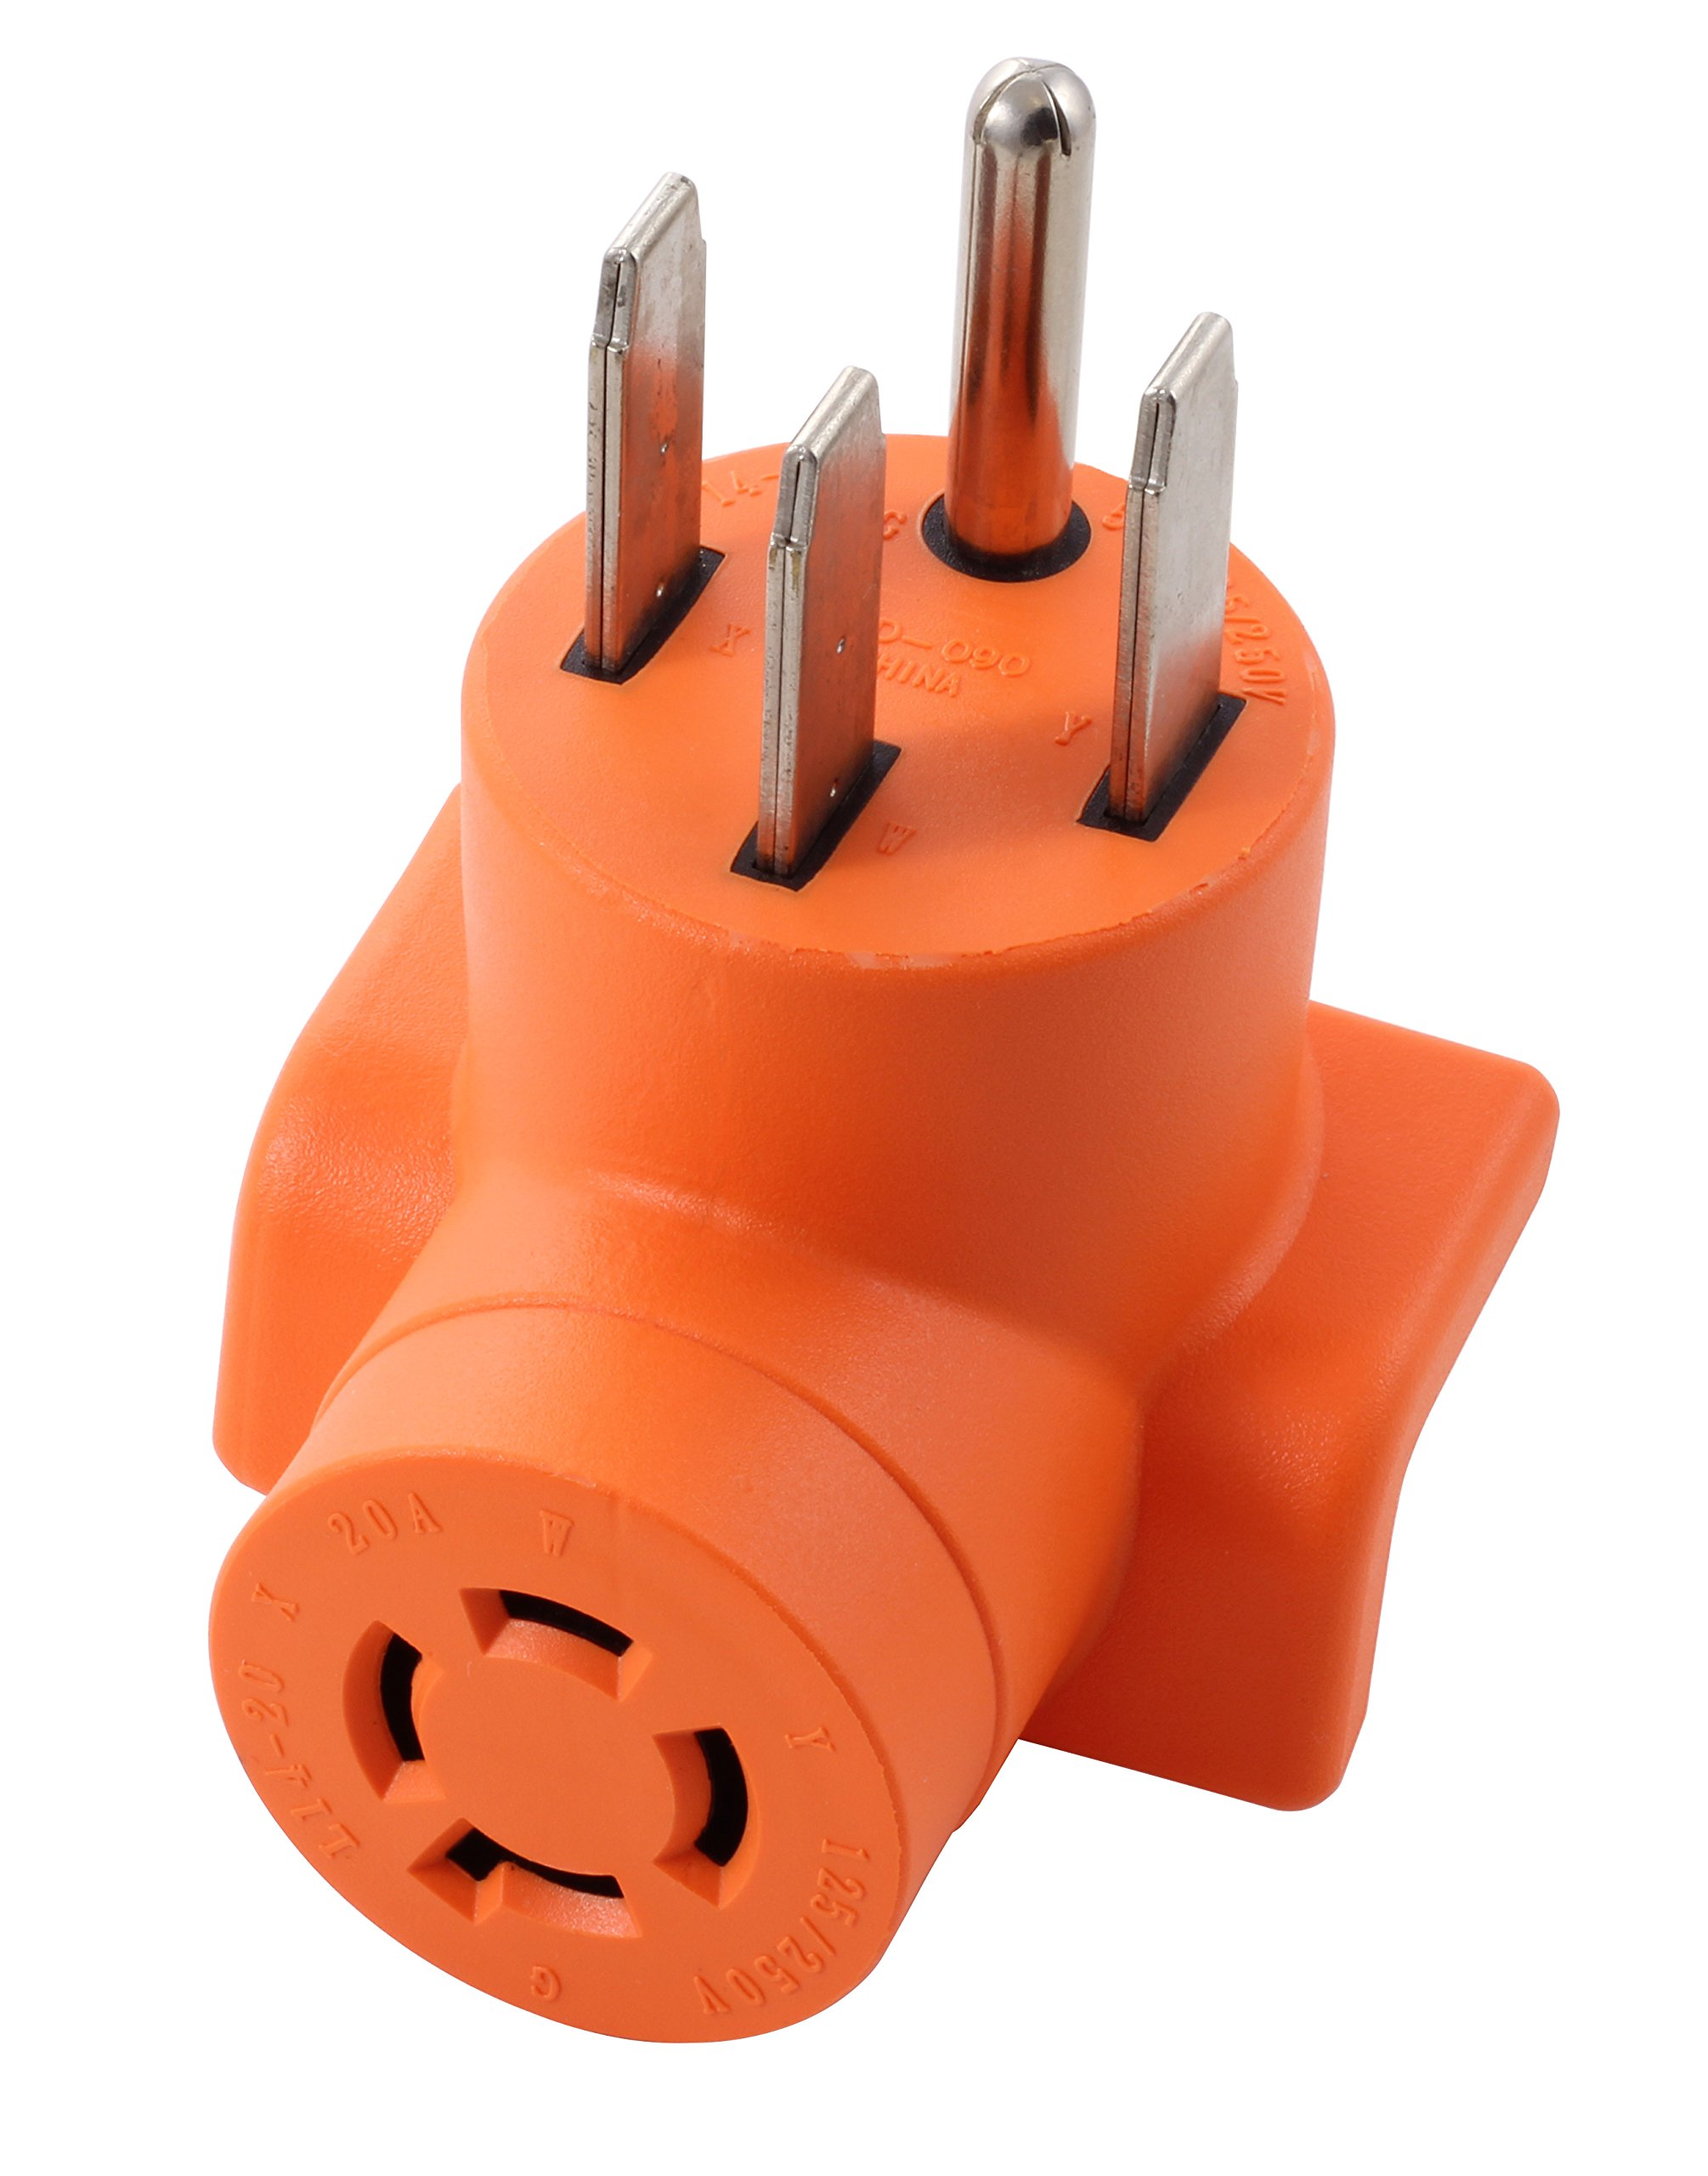 AC WORKS [AD1450L1420] Range/ RV/ Generator Outlet Adapter 4-Prong 14-50P Plug to 4-Prong 20Amp Locking L14-20R Adapter